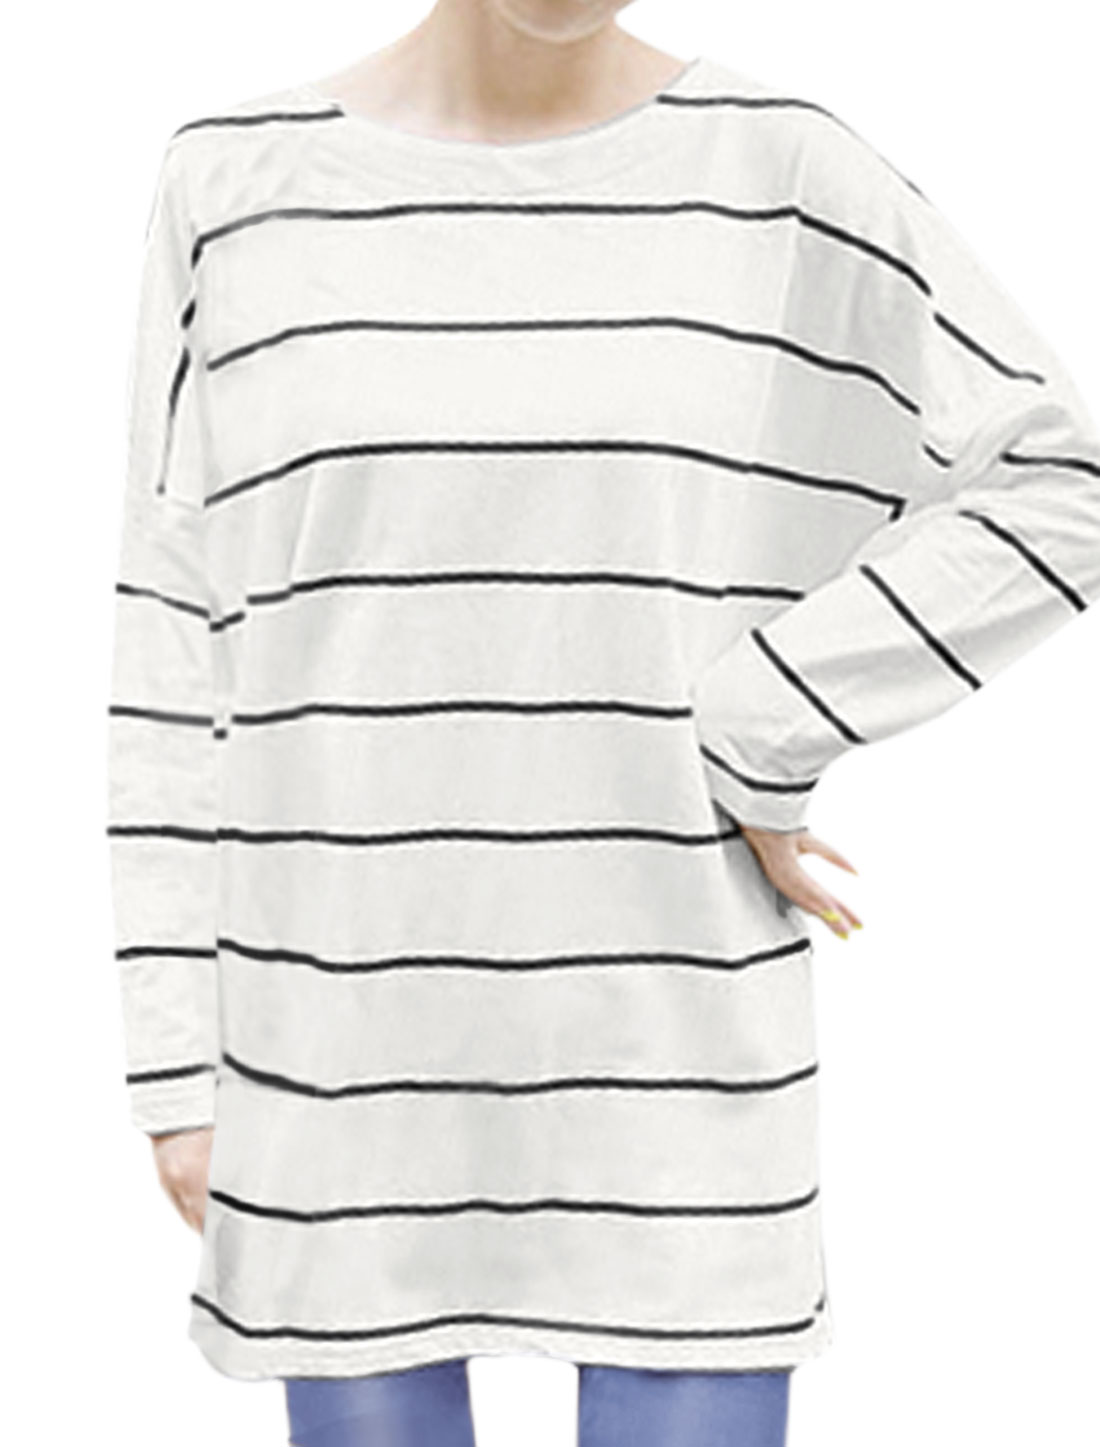 Women Round Neck Long Batwing Sleeves Stripes Loose Fit Tunic Tee White XS